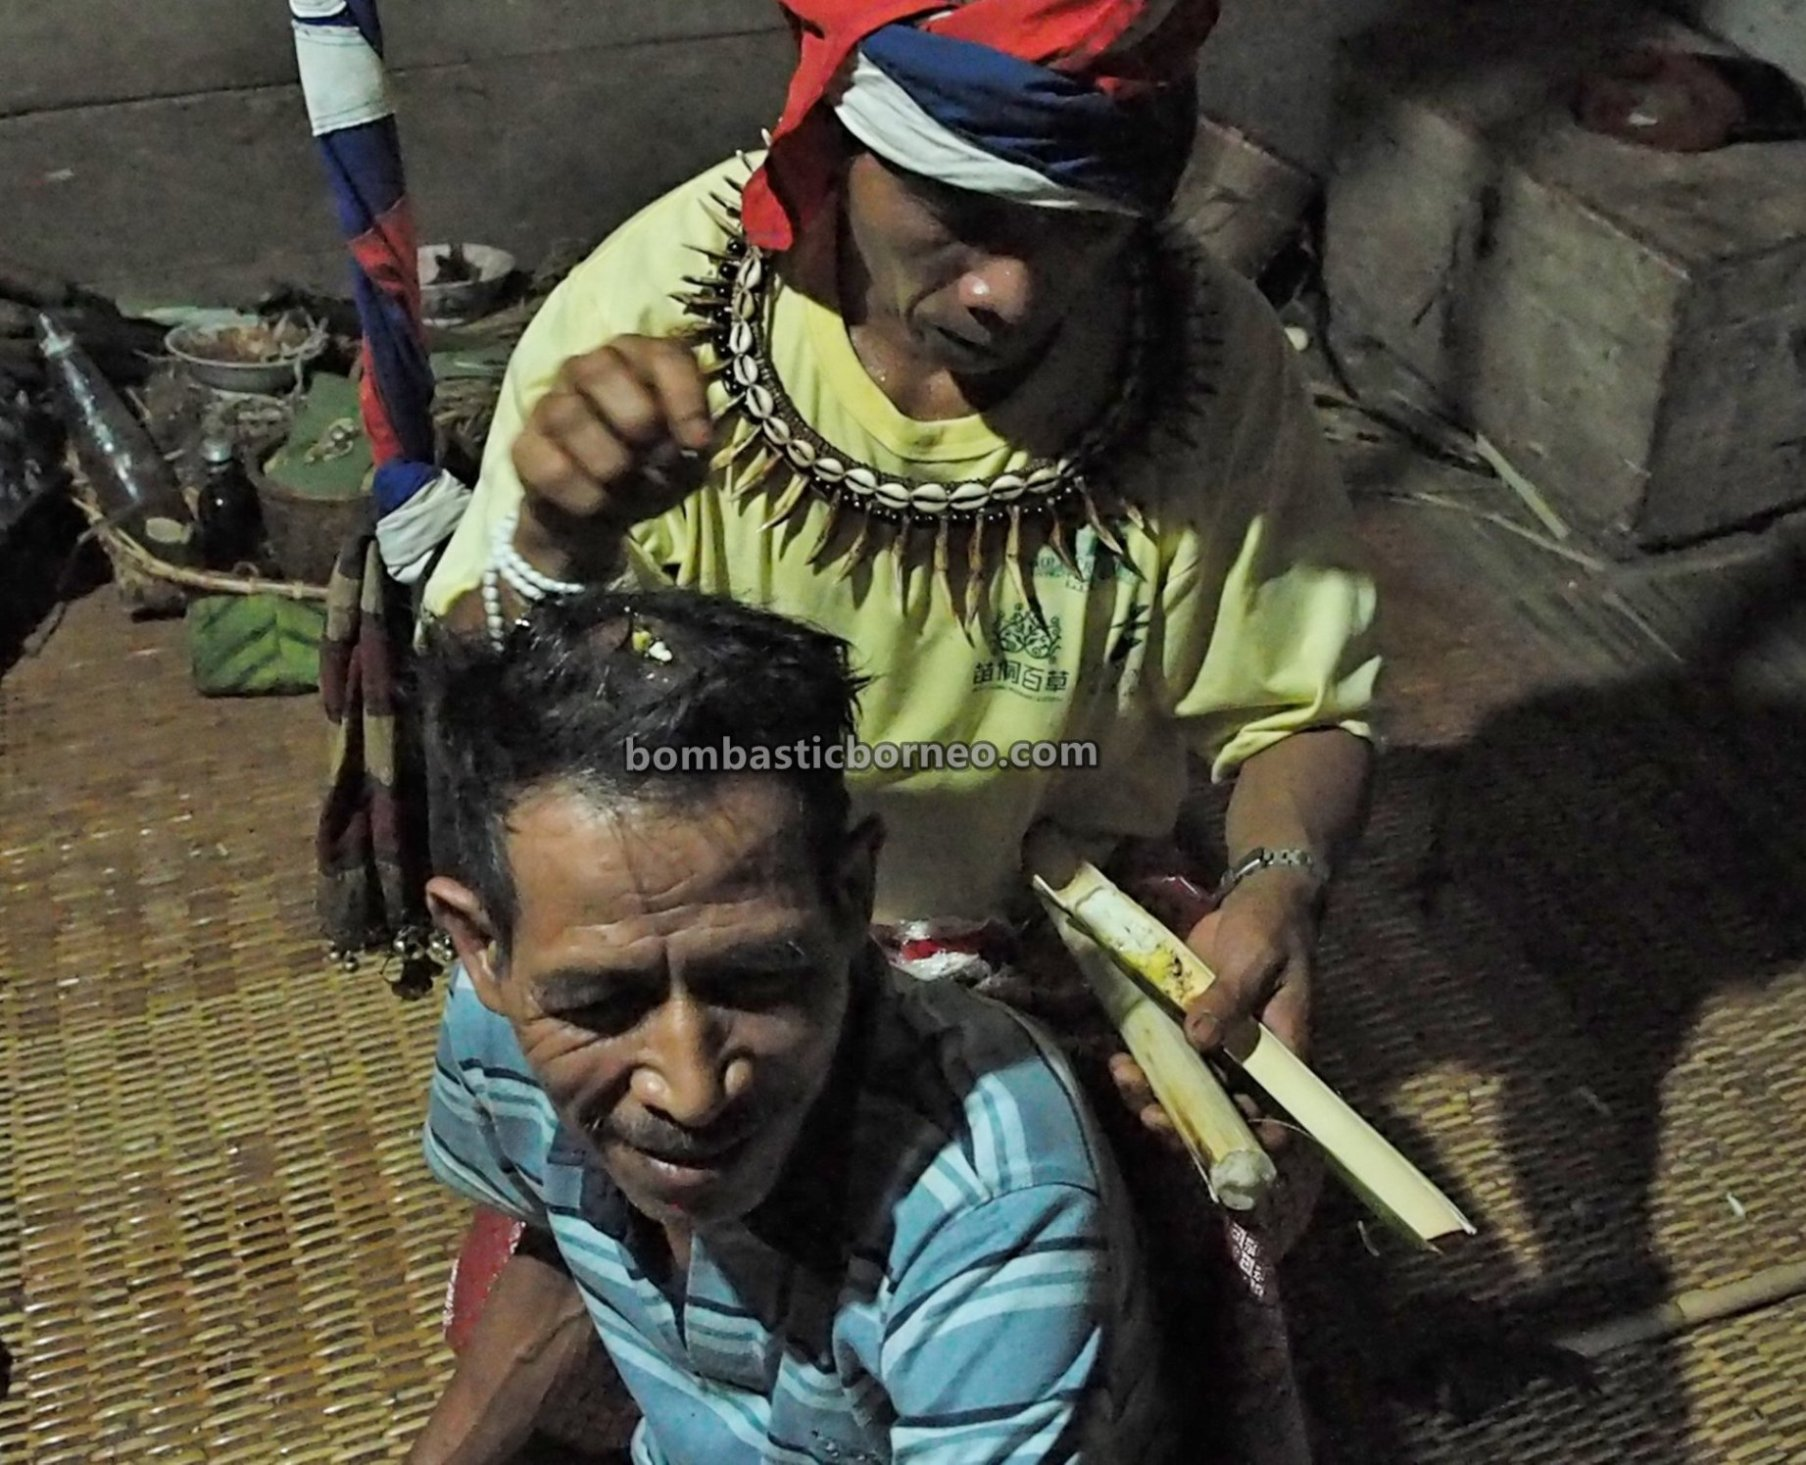 Desa Tamong, traditional, culture, village, budaya, Indonesia, Kalimantan Barat, Bengkayang, Siding, gawai dayak, ethnic, tribal, travel guide, Cross Border, Borneo